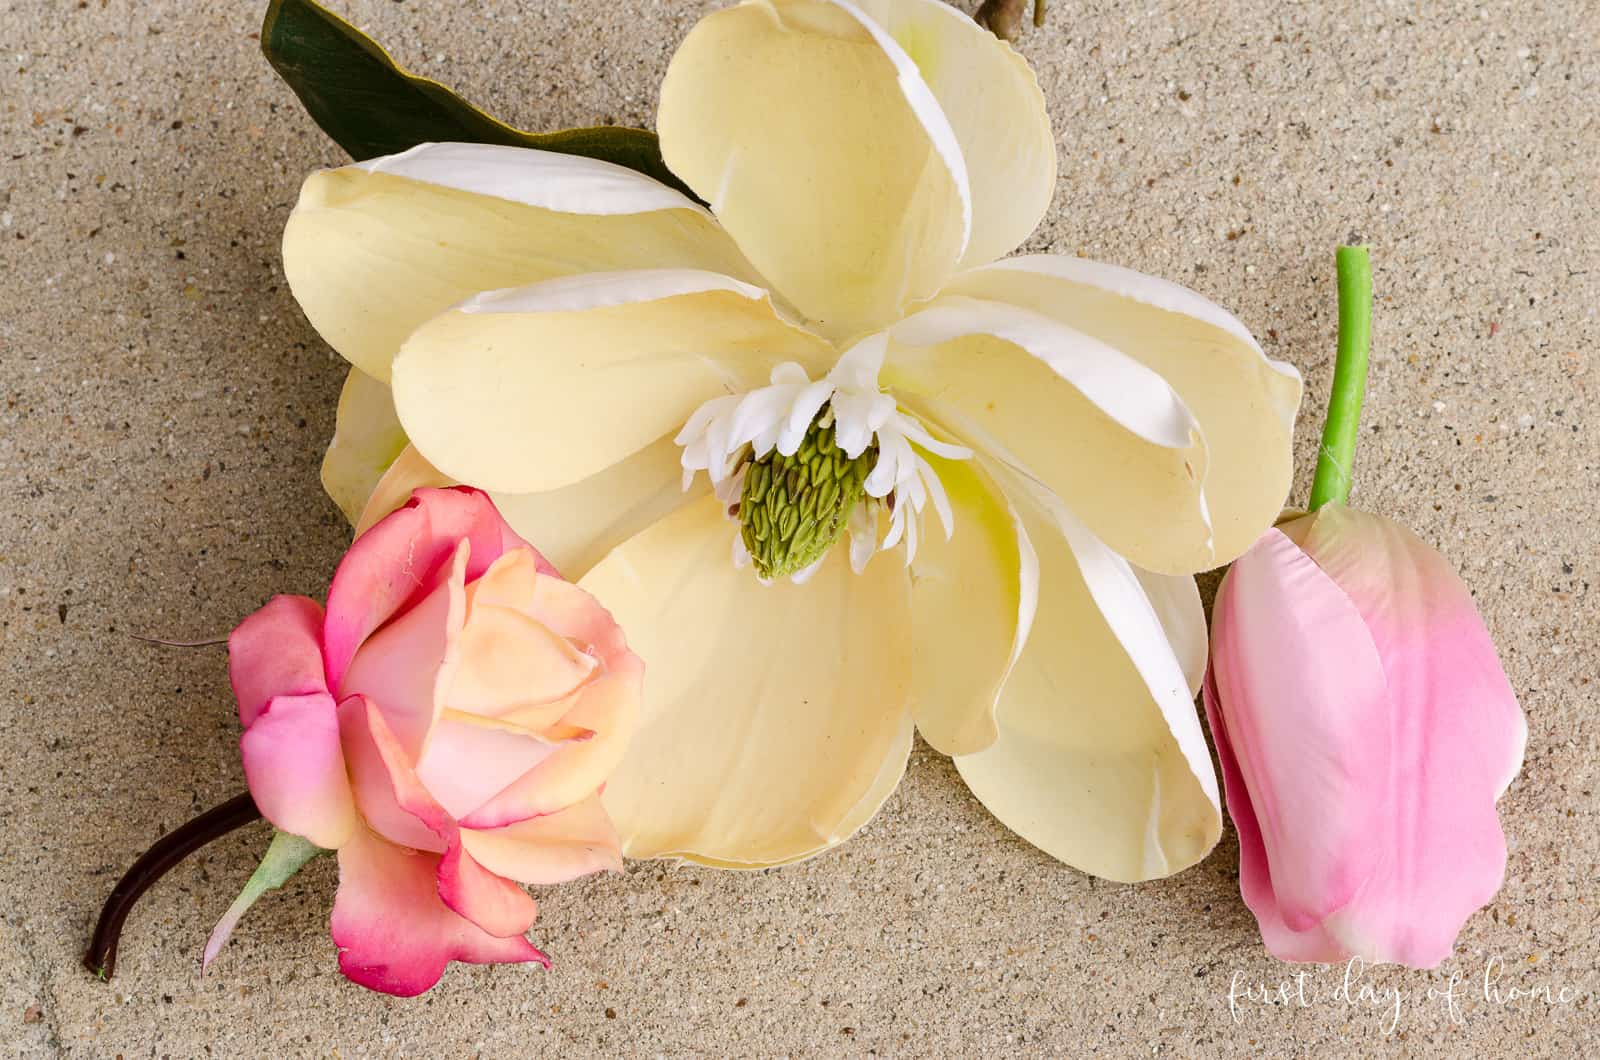 Artificial magnolia, rose and tulip flowers used for front door spring wreath